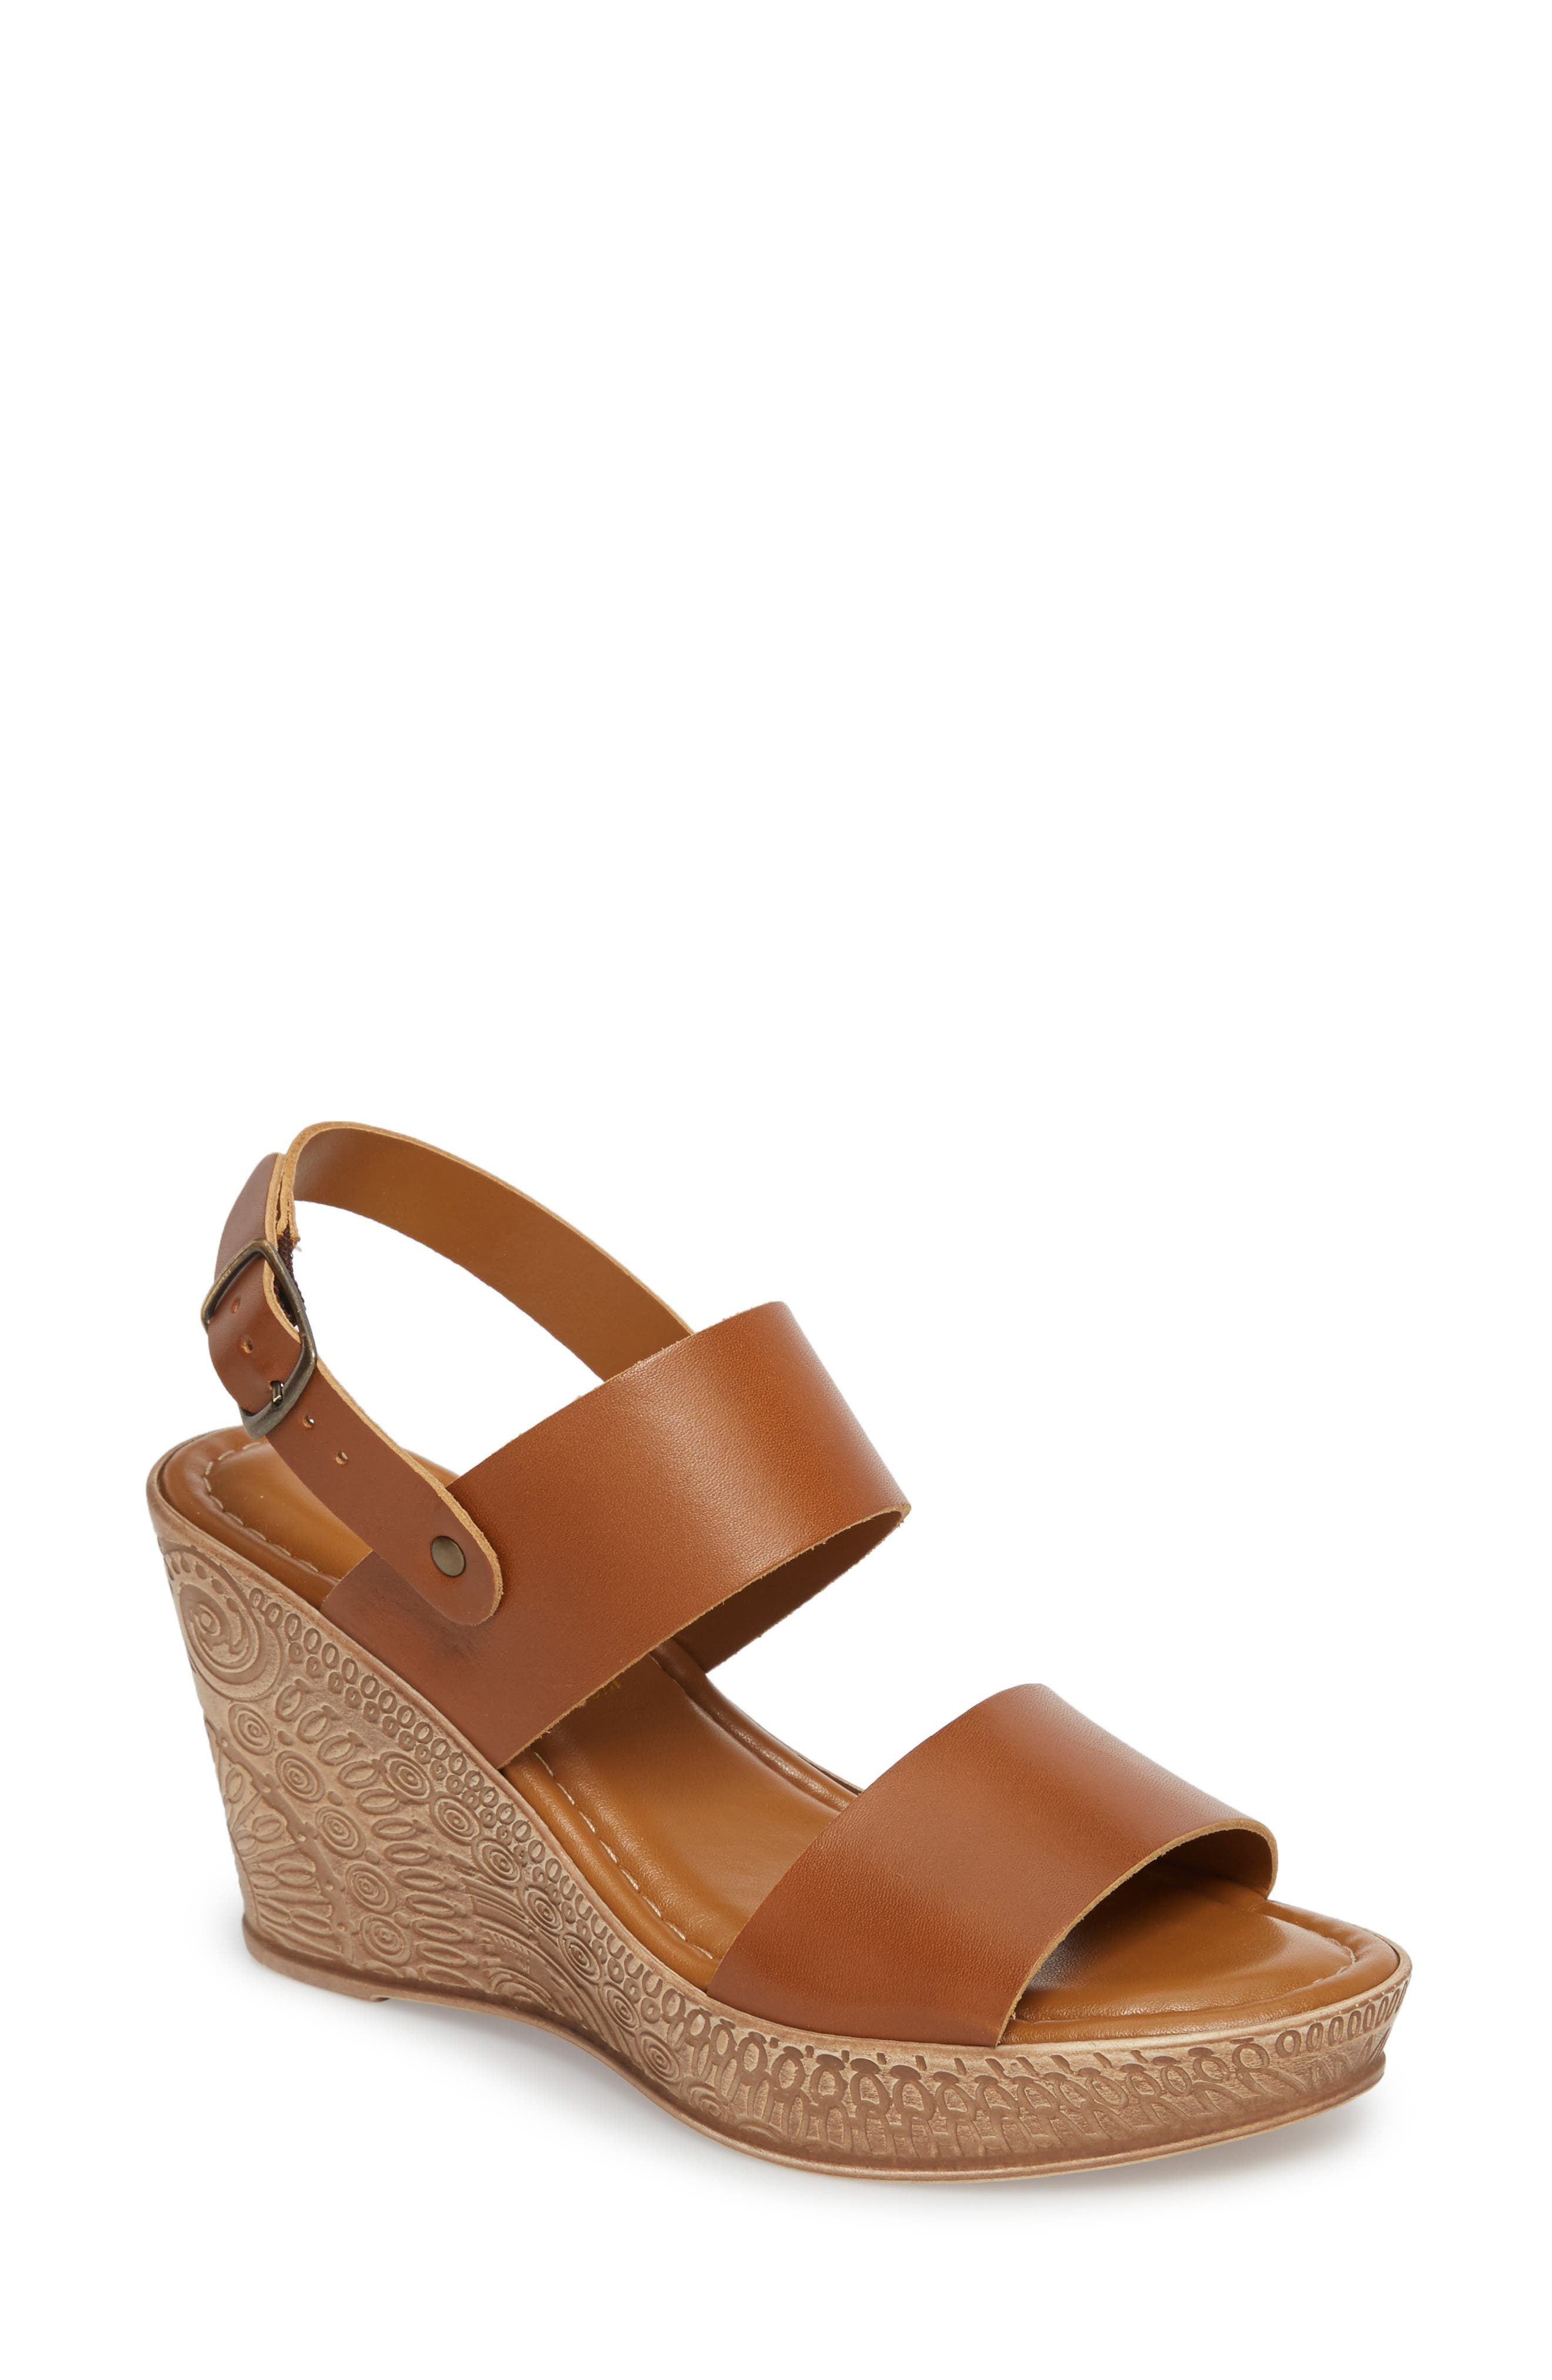 Cor Wedge Sandal,                         Main,                         color, WHISKEY LEATHER